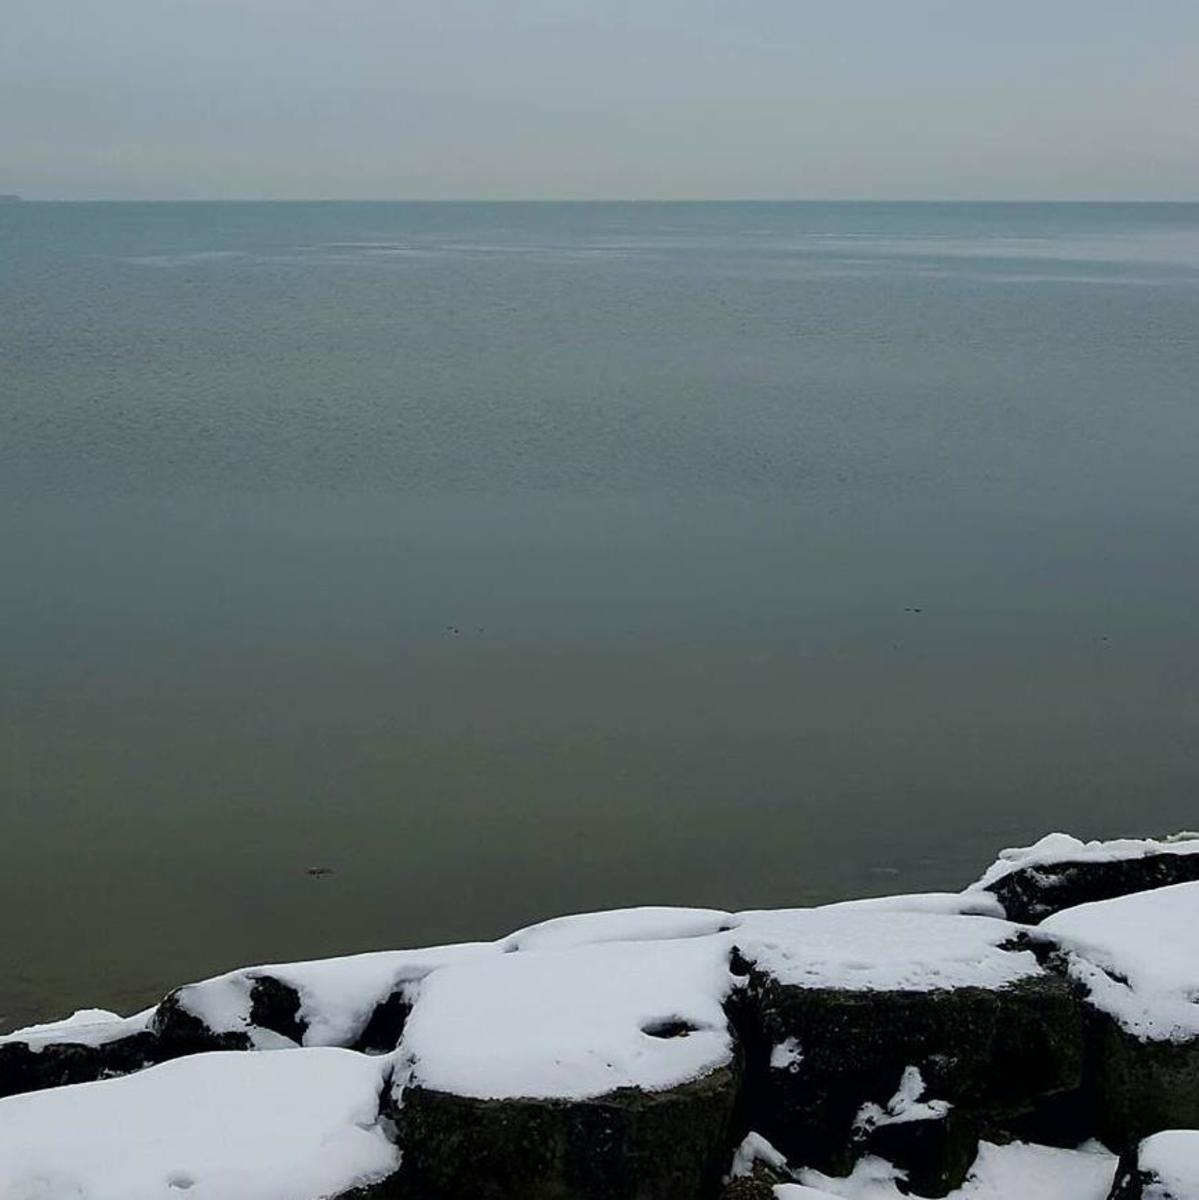 A picture of Lake Erie on the shore of East Harbor State Park in Ohio - A beautiful place to visit during the winter.